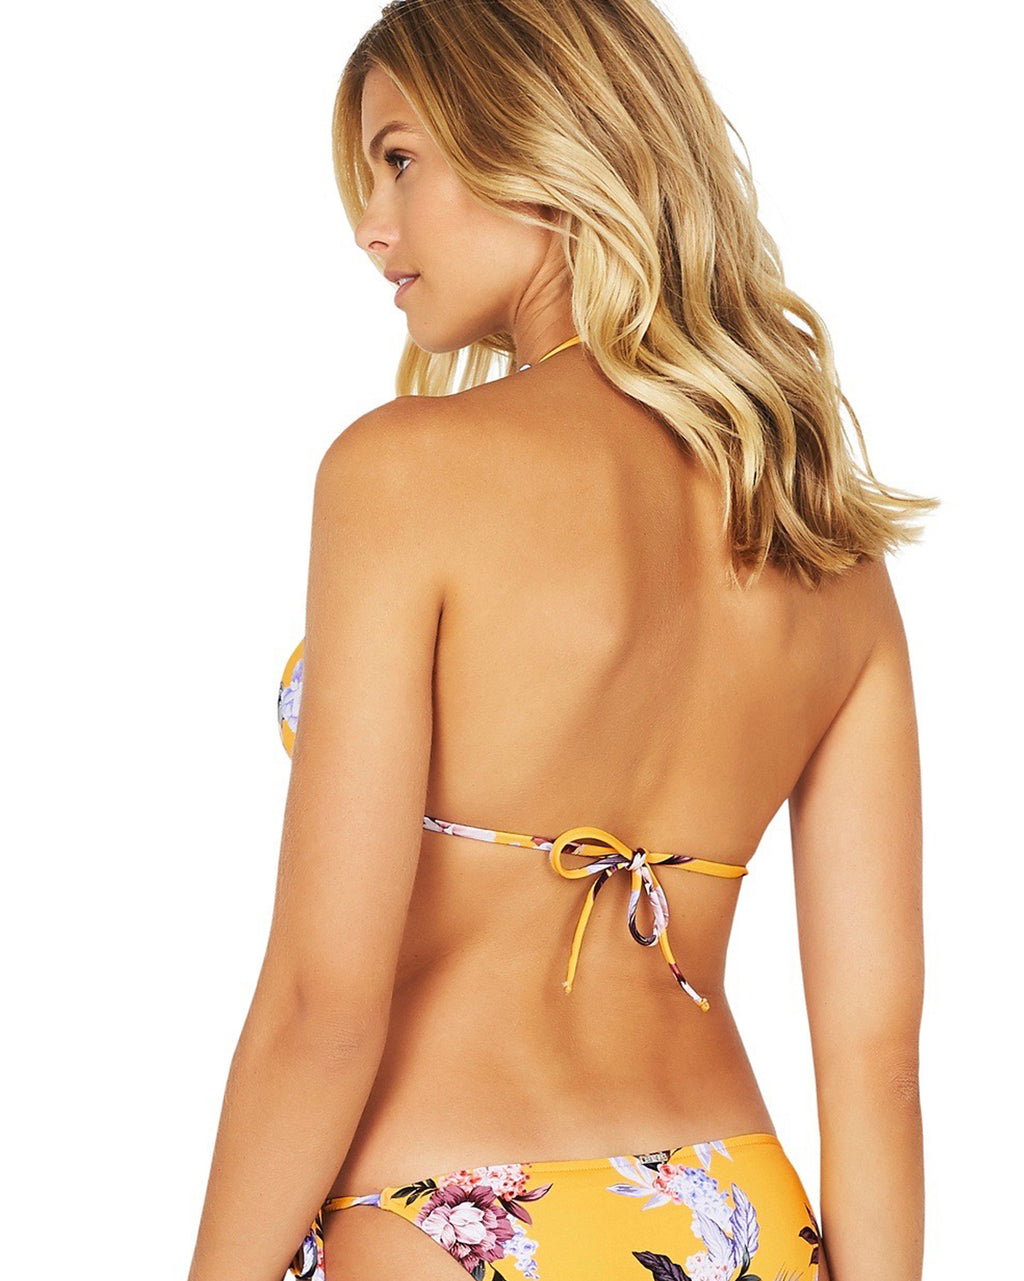 COVENT GARDEN LONGLINE SLIDE TRIANGLE BIKINI TOP